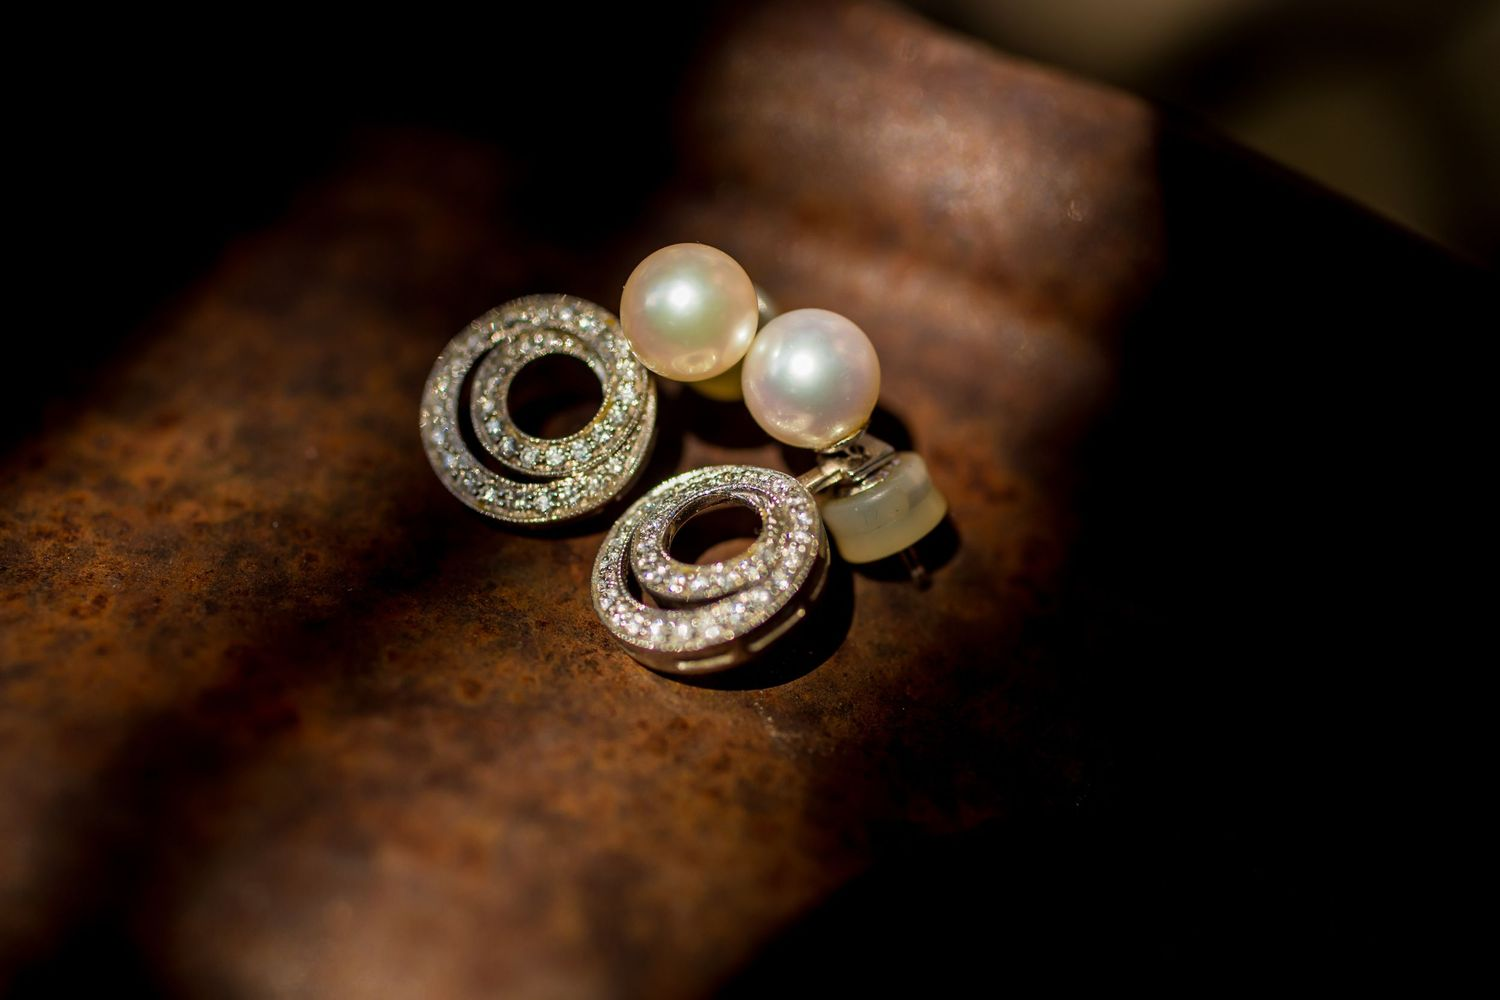 Ear rings by Columbia, SC, Wedding Photographer Jeff Blake